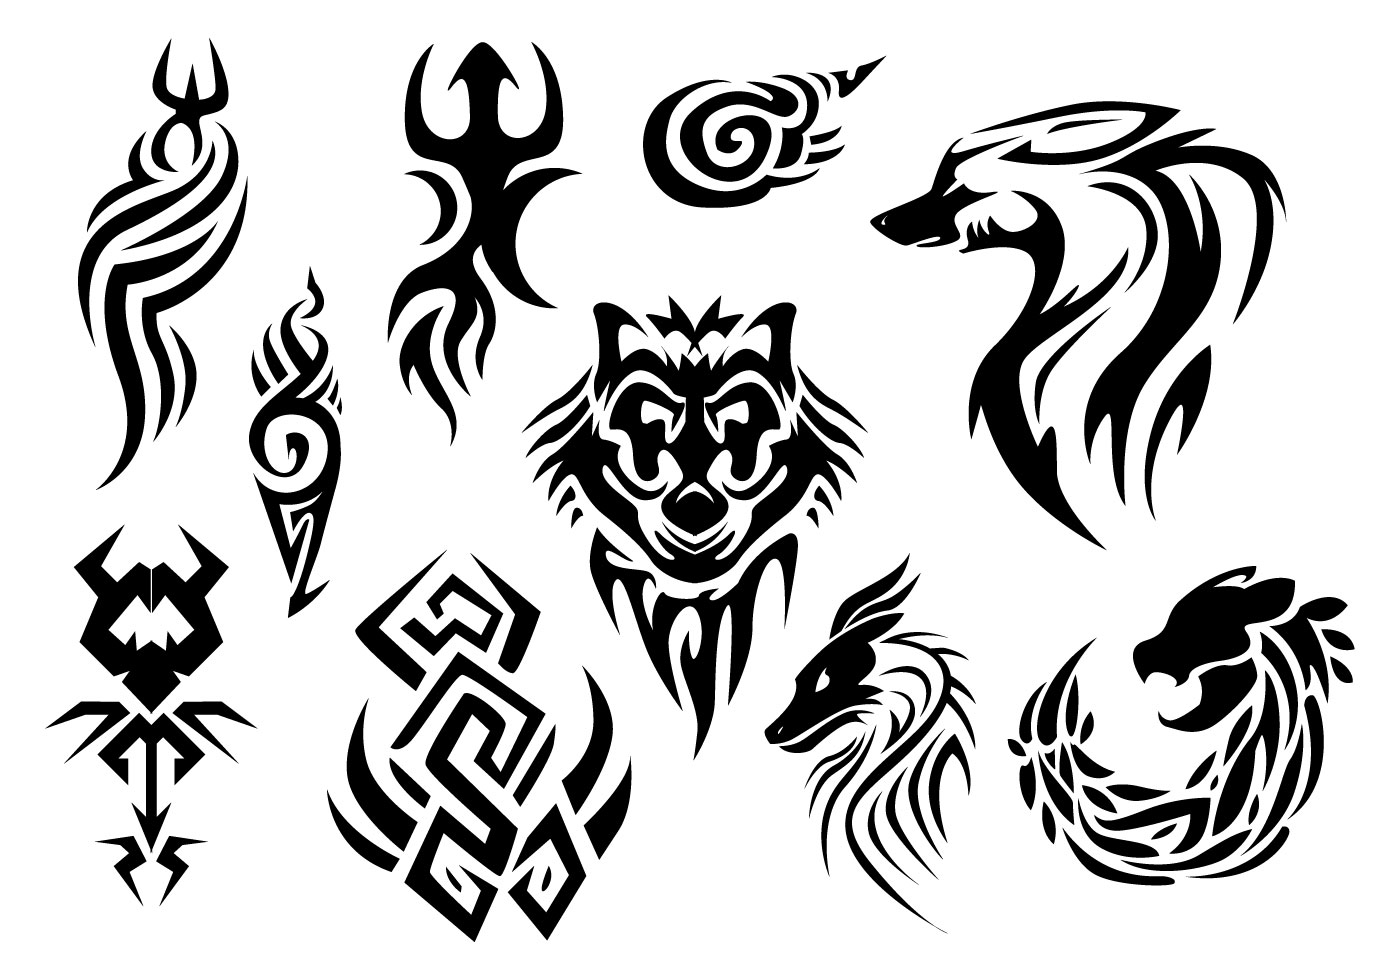 20 Pinstripe Small Tattoos Ideas And Designs